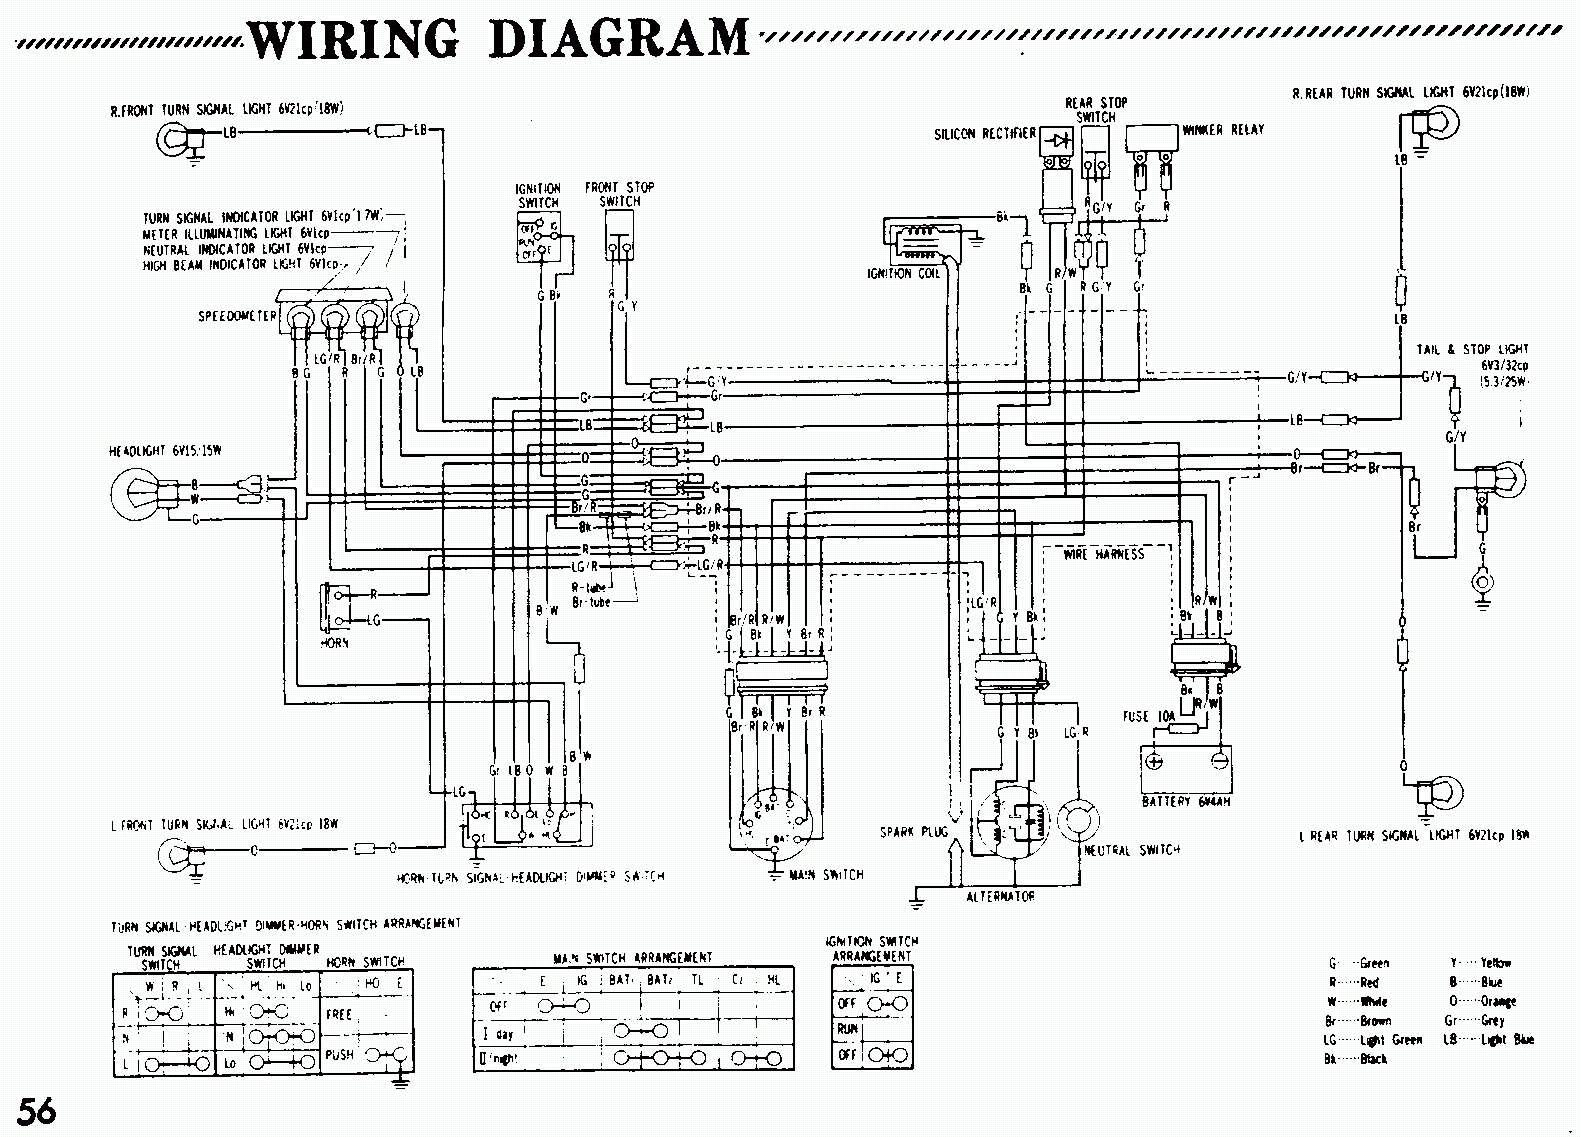 Ct70 Wiring Diagram Library Cb750 Furthermore Volt Meter With Shunt A High Quality And Clone Engine Is Available At Http